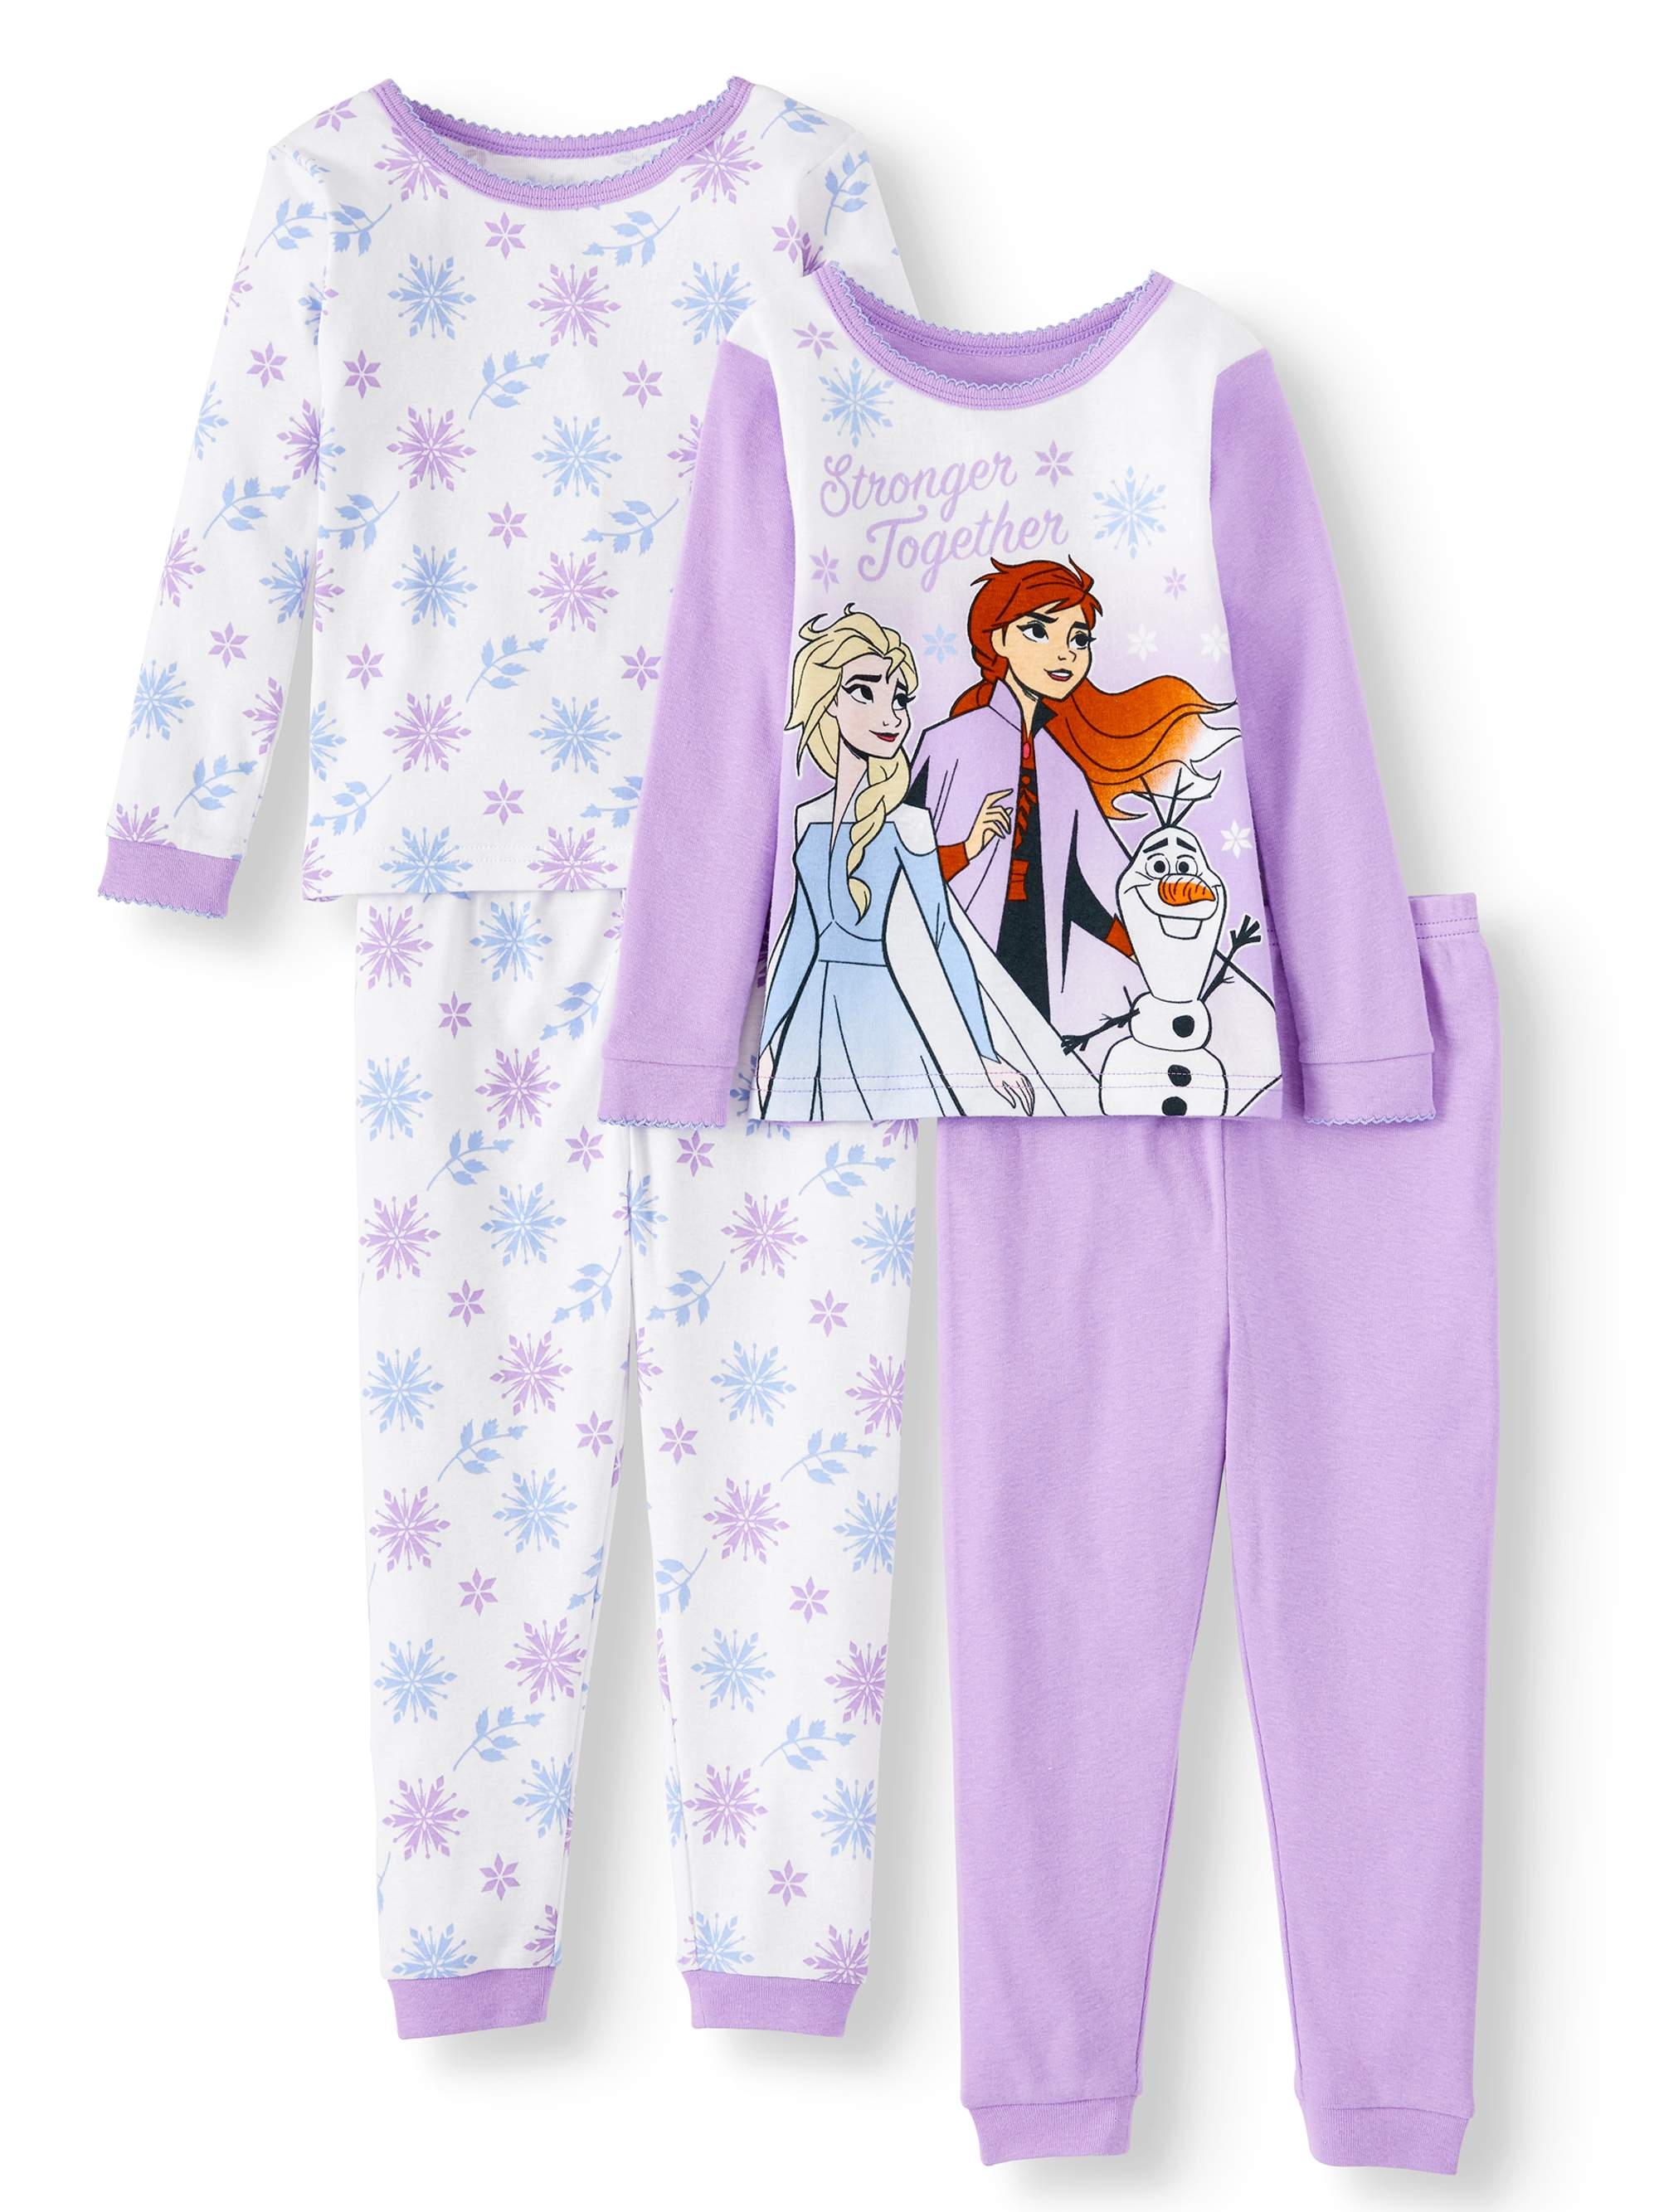 Disney Store Star Wars Boy Long Sleeve Cotton Tight Fit Pajama Set Size 7